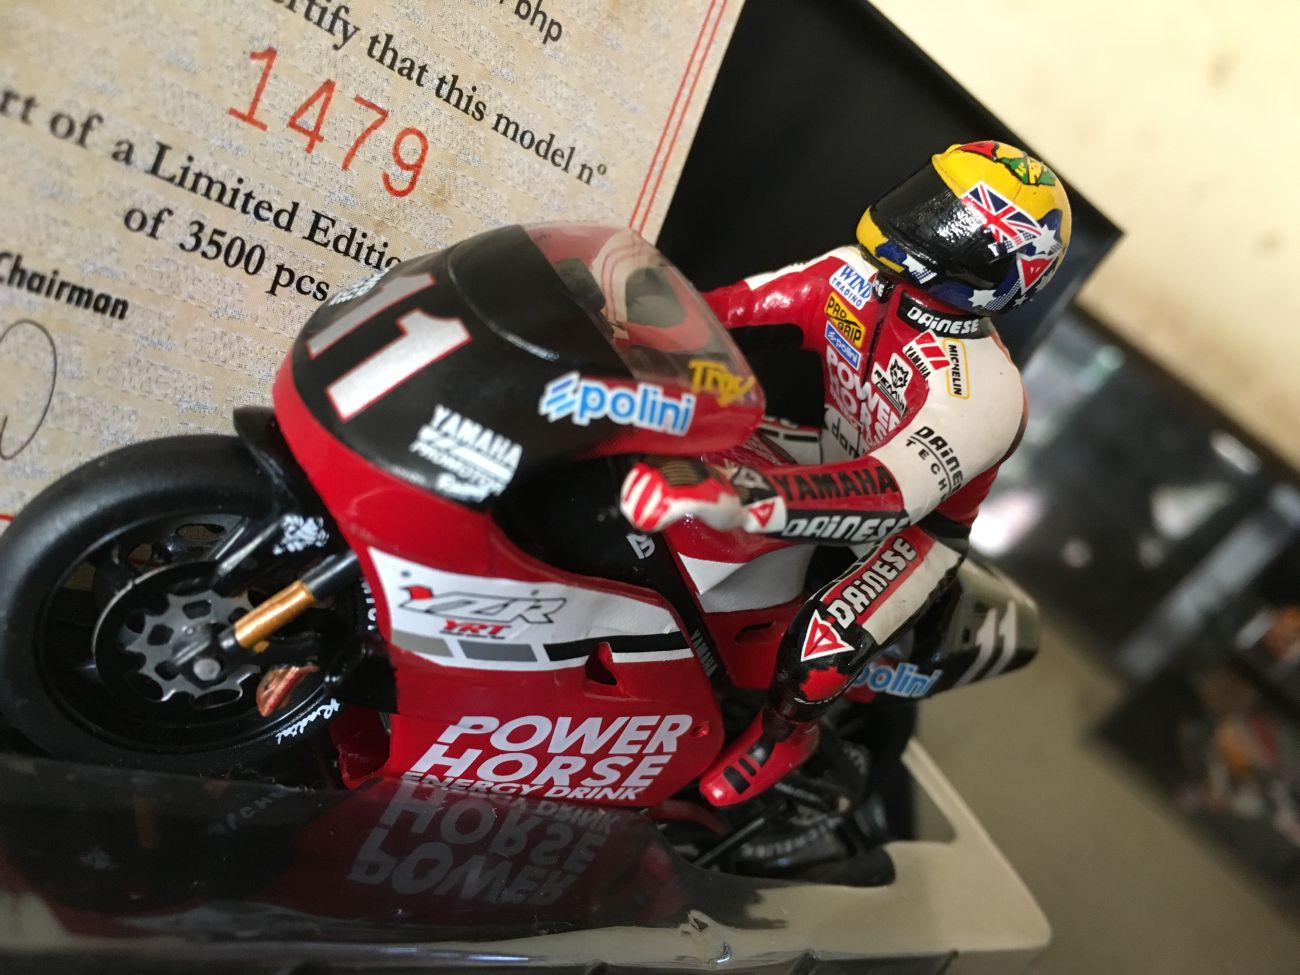 Troy Corser Yamaha YZR500 Power Horse 1:24 Model with Rider